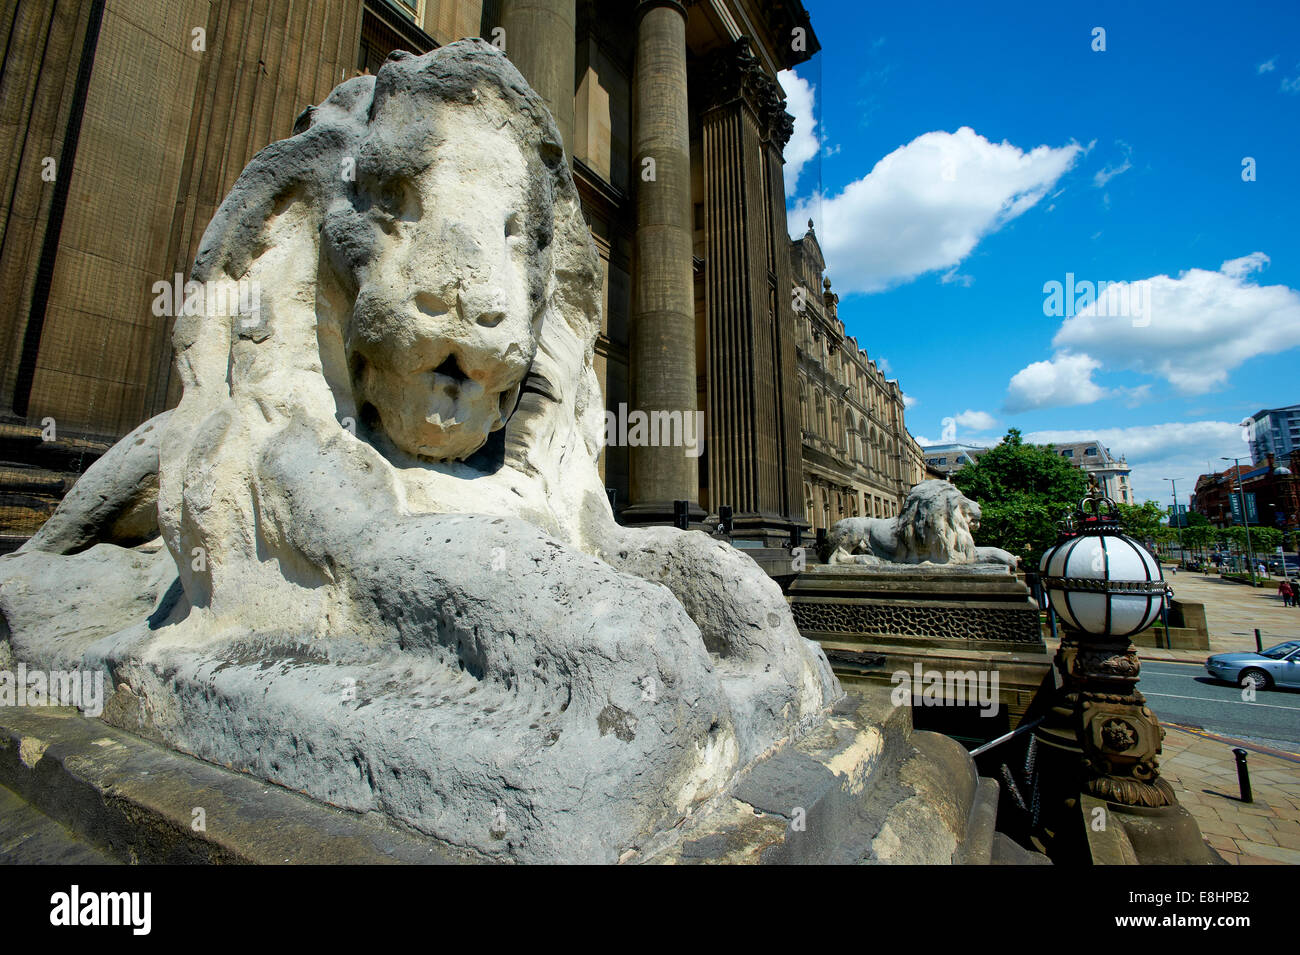 Stone carved lion outside Leeds Town Hall, Leeds, West Yorkshire, UK. - Stock Image